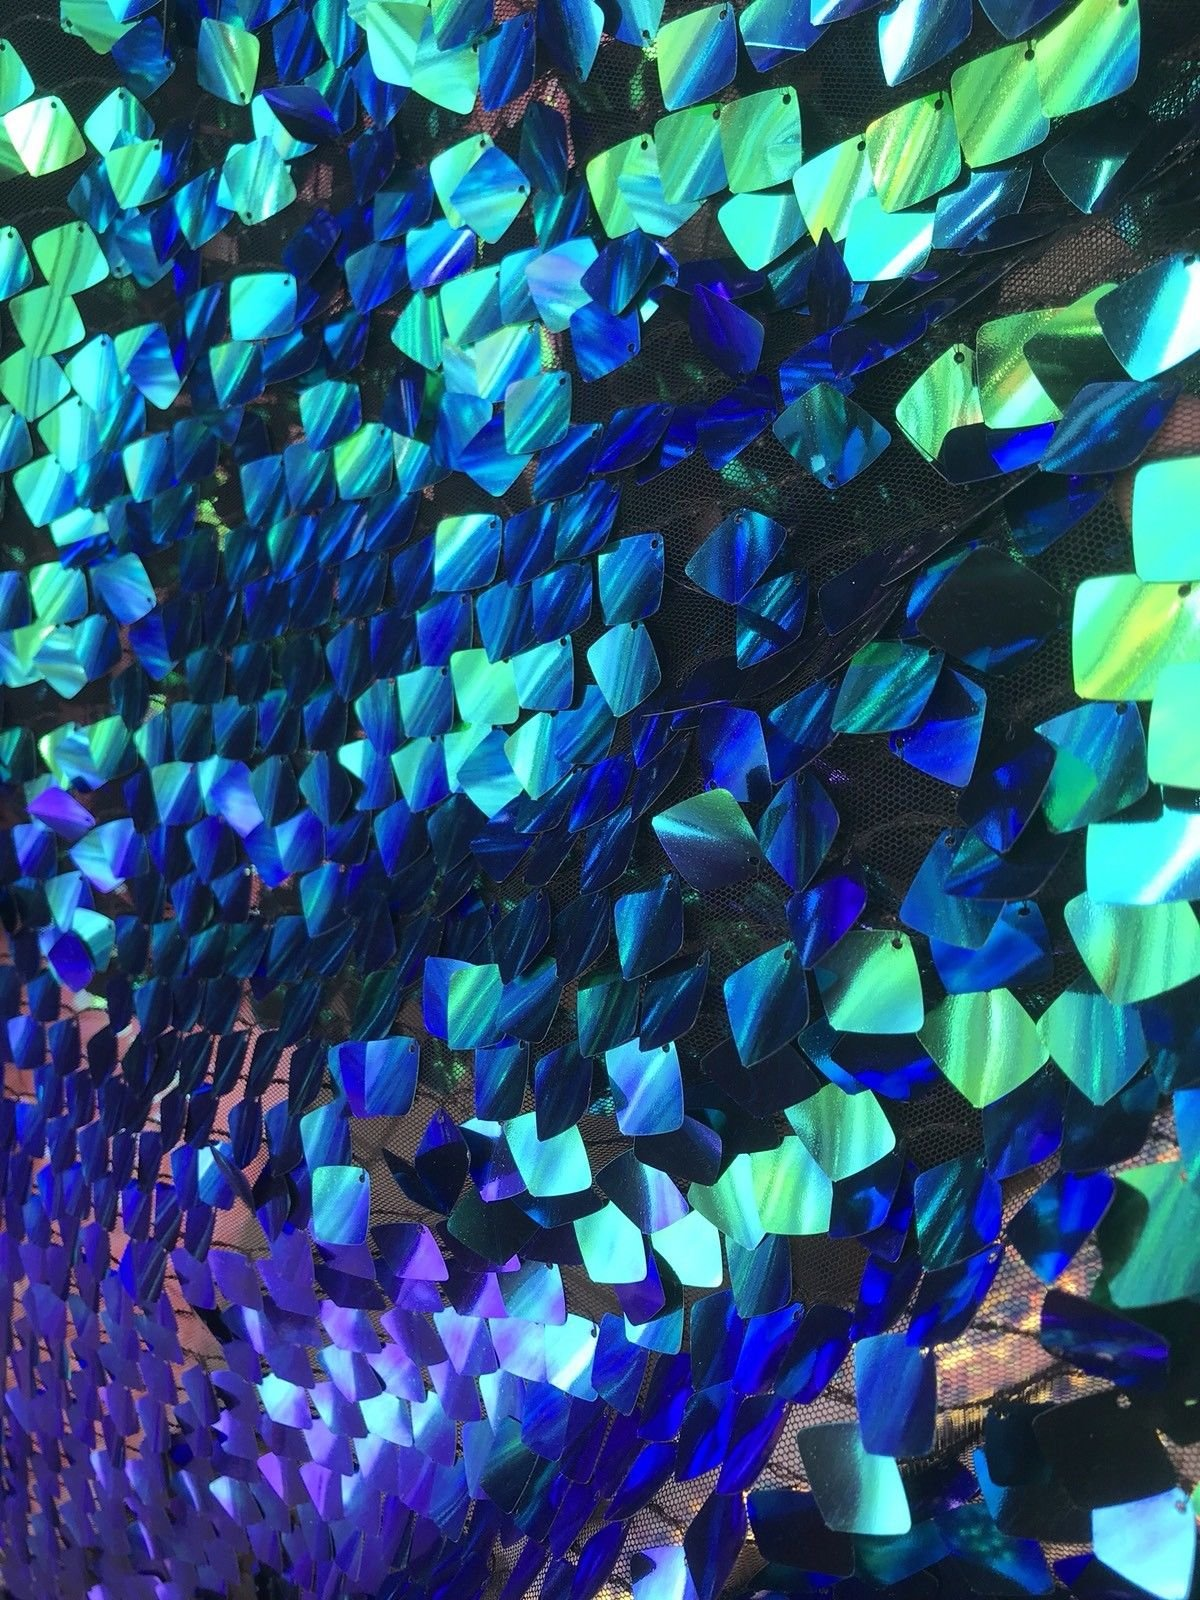 GREEN IRIDESCENT SEQUINS-DRAGON SCALES EMBROIDER ON A MESH-SOLD BY THE YARD. by NEW CREATIONS FABRIC AND FOAM INC